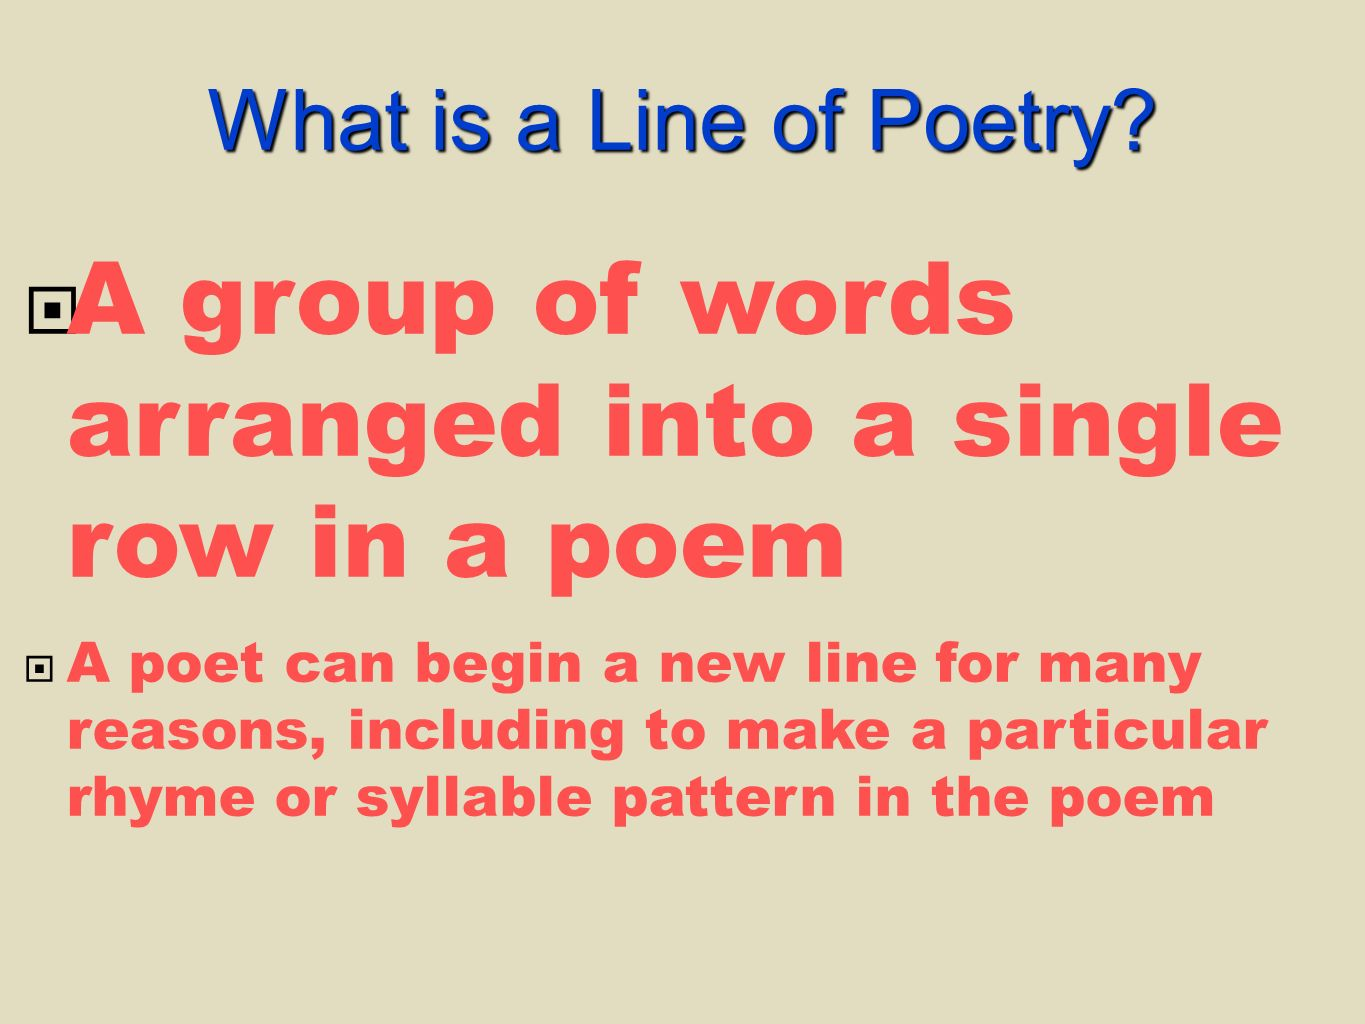  A group of words arranged into a single row in a poem  A poet can begin a new line for many reasons, including to make a particular rhyme or syllable pattern in the poem What is a Line of Poetry?